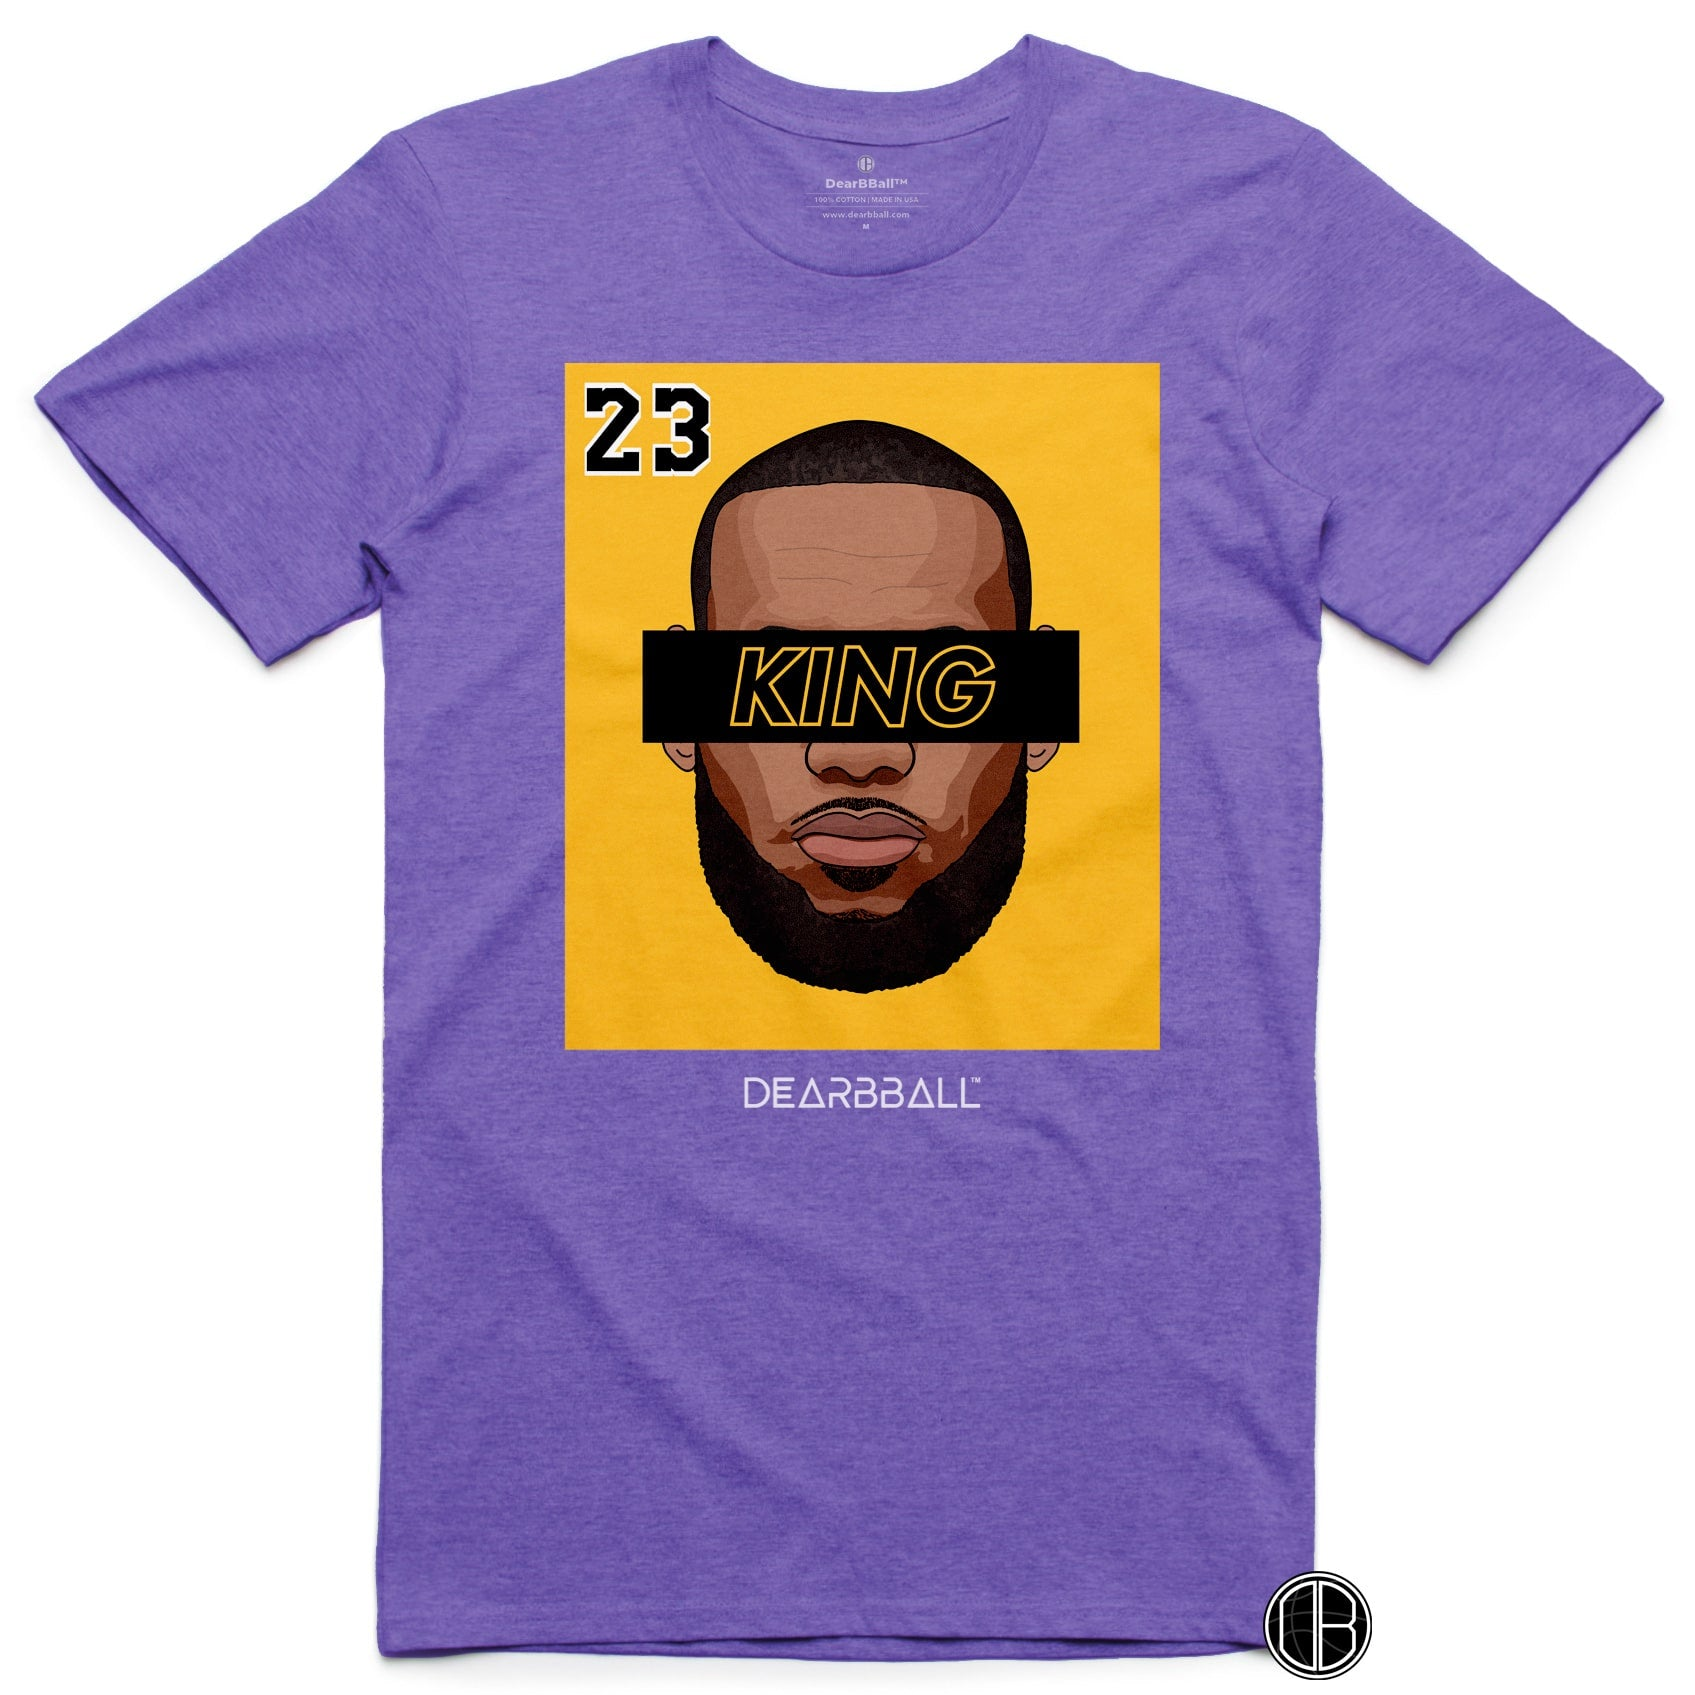 LEBRON JAMES T-Shirt KING 23 Gold Black Limited Edition purple